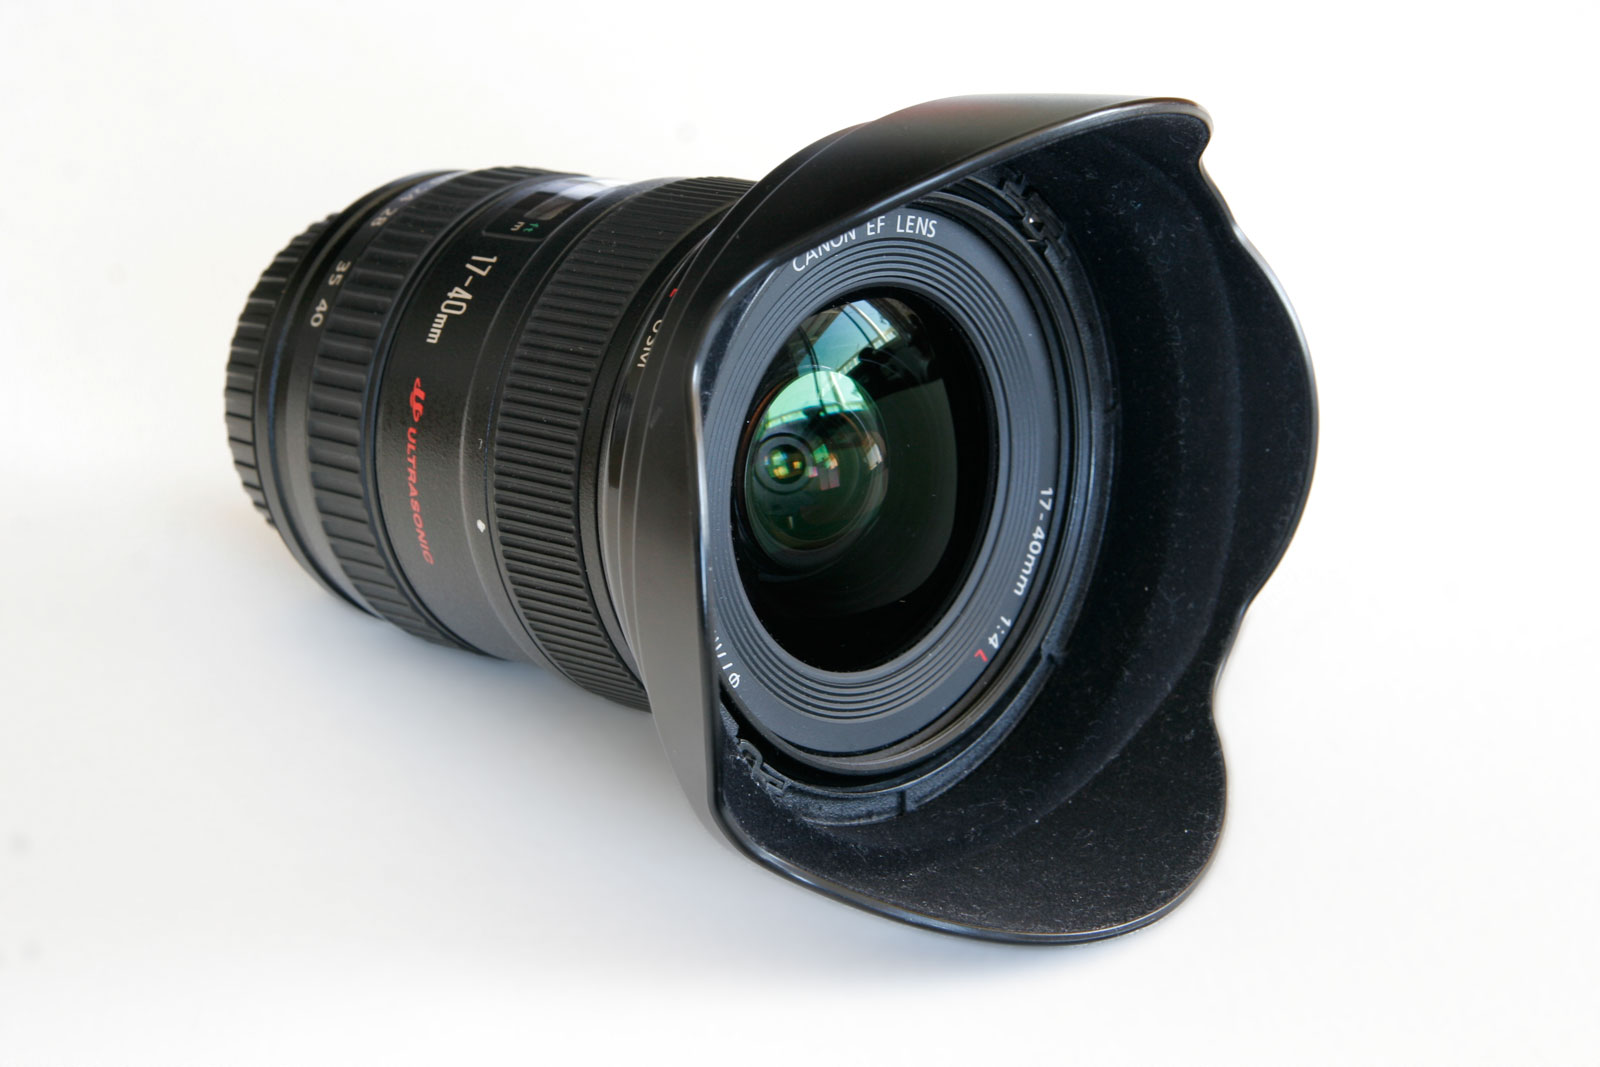 File:Canon 17-40 f4 L lens.jpg - Wikipedia, the free encyclopedia